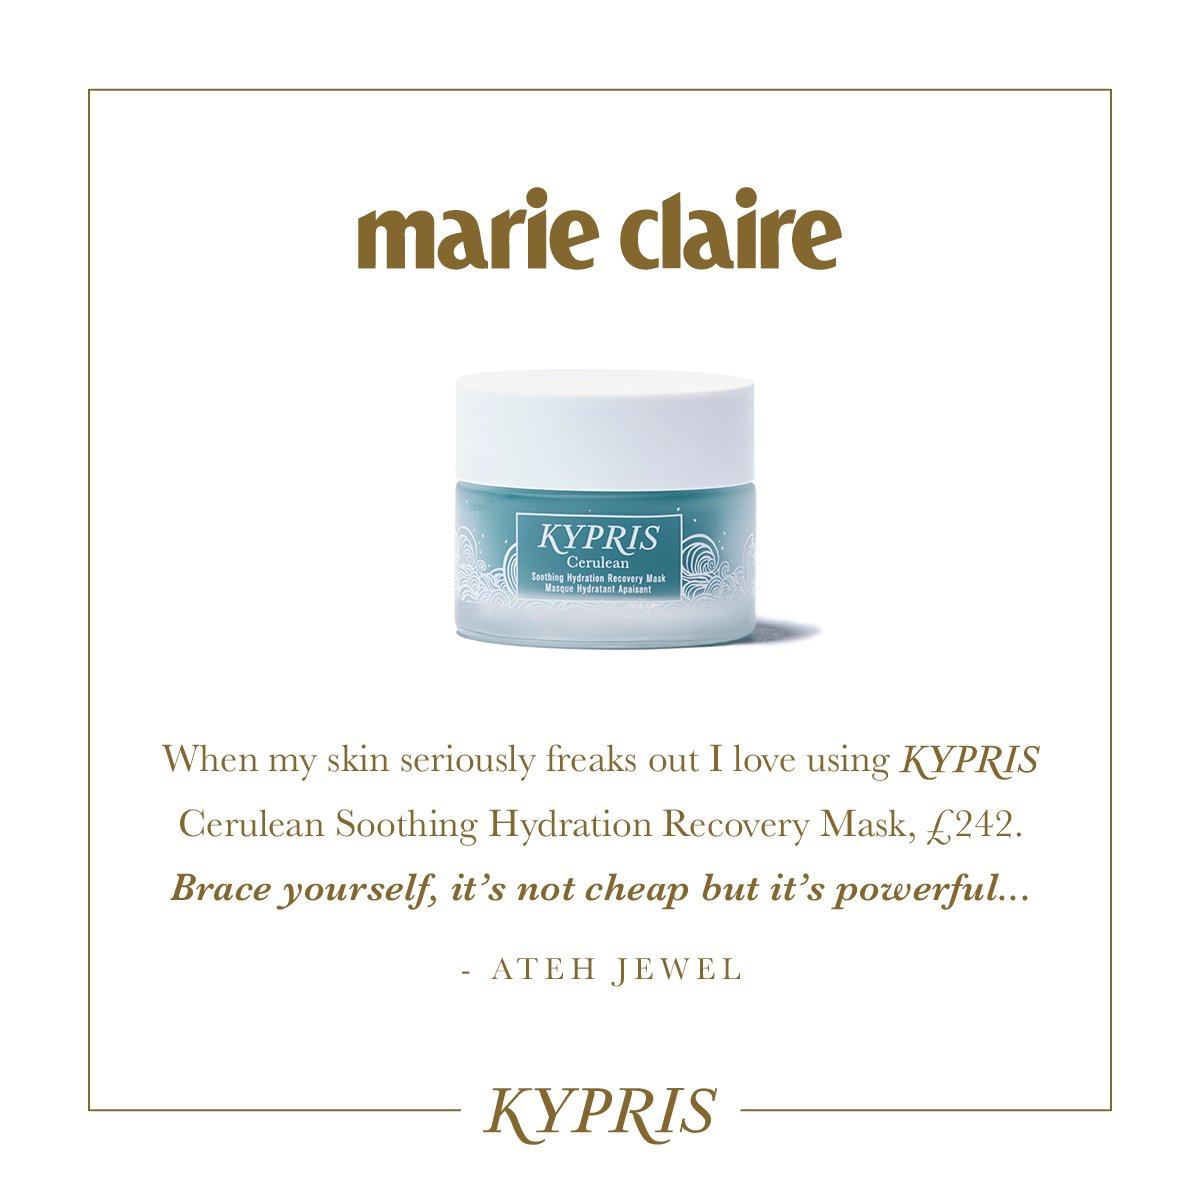 KYPRIS In The Press: Marie Claire